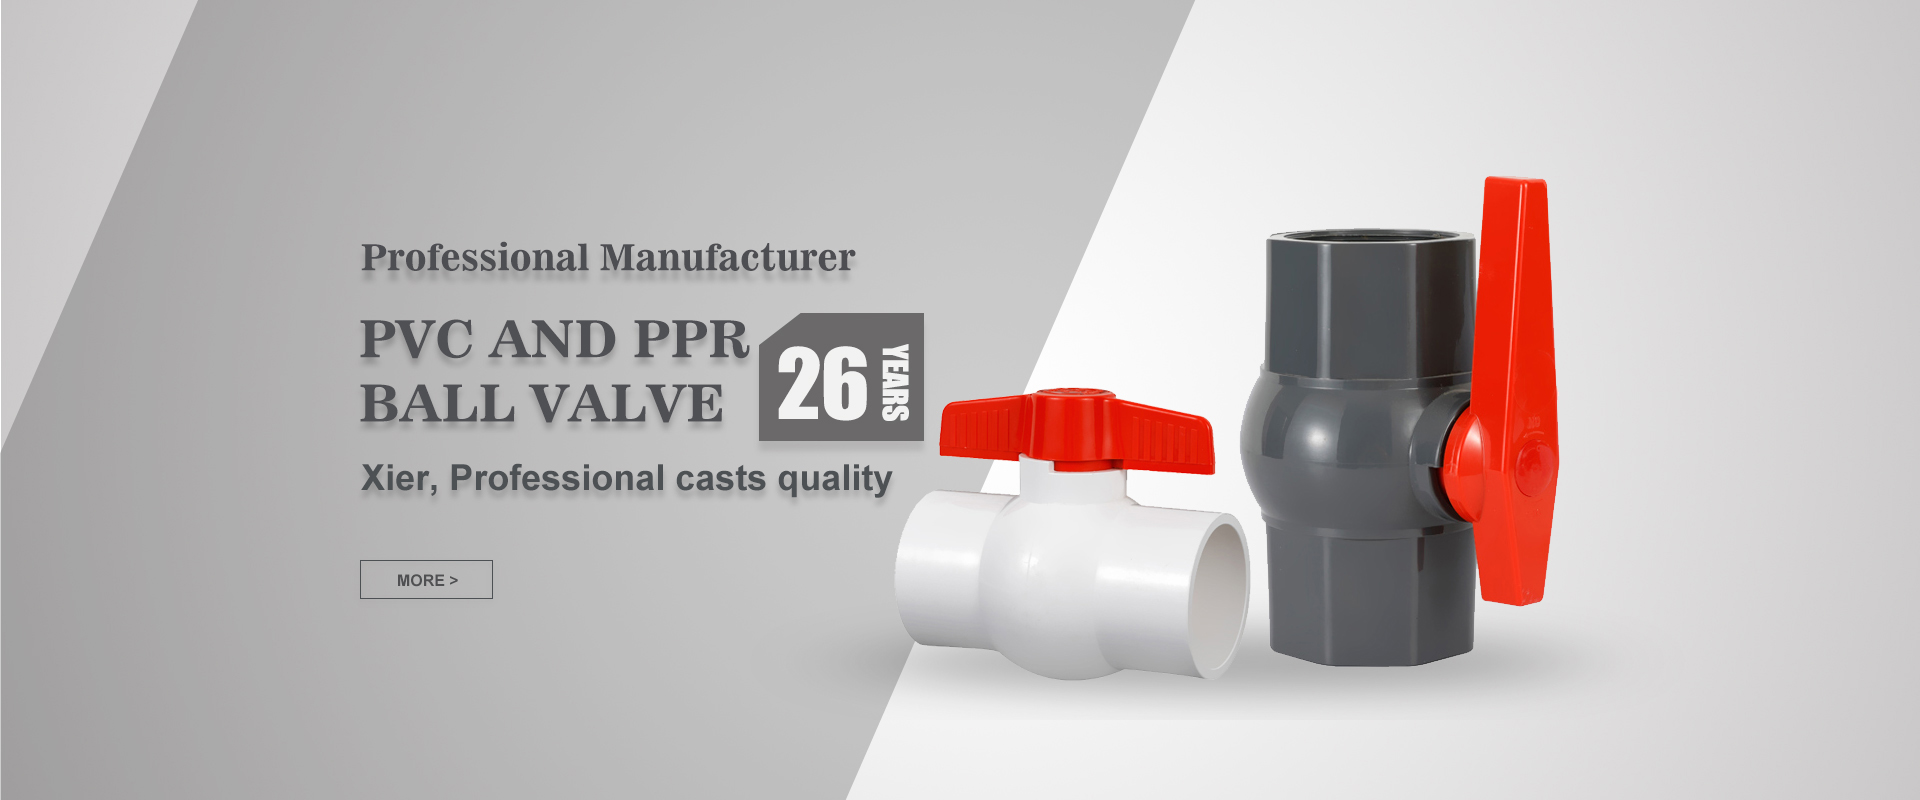 Zhejiang Xier Plastic Valve Lead Co., Ltd image 1